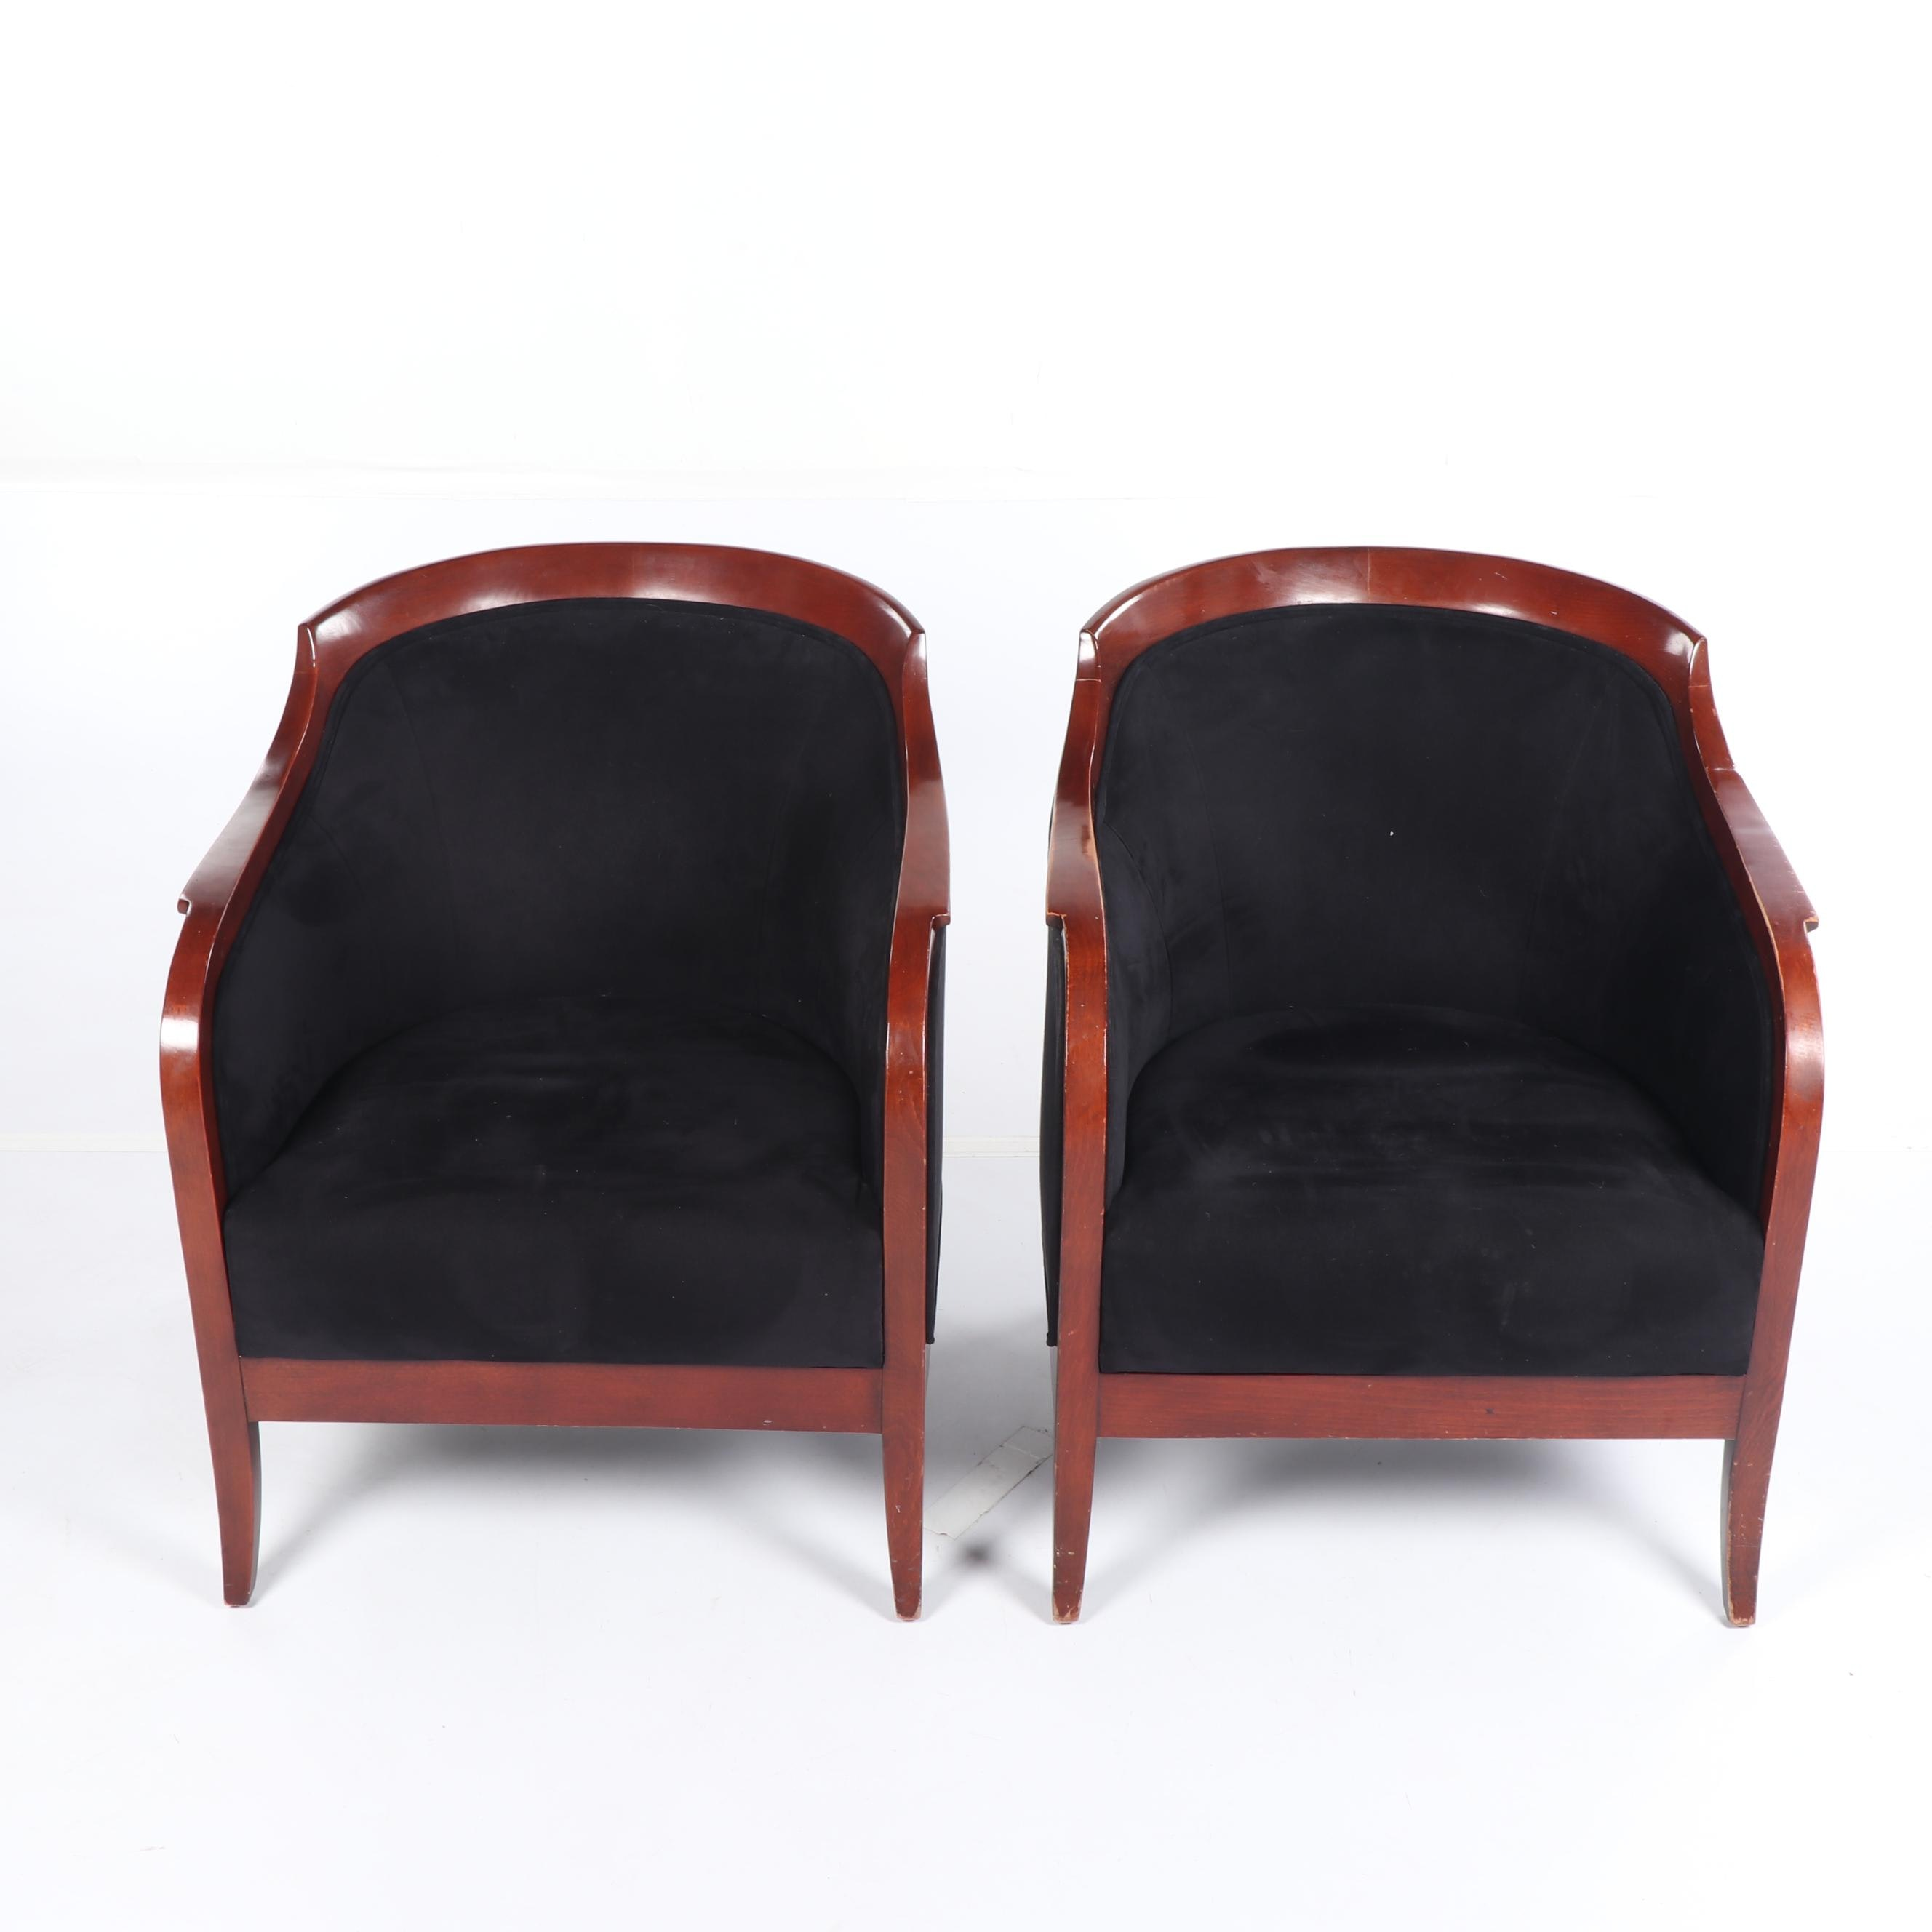 Biedermeier Style Upholstered Armchairs by Preview Furniture, Late 20th Century